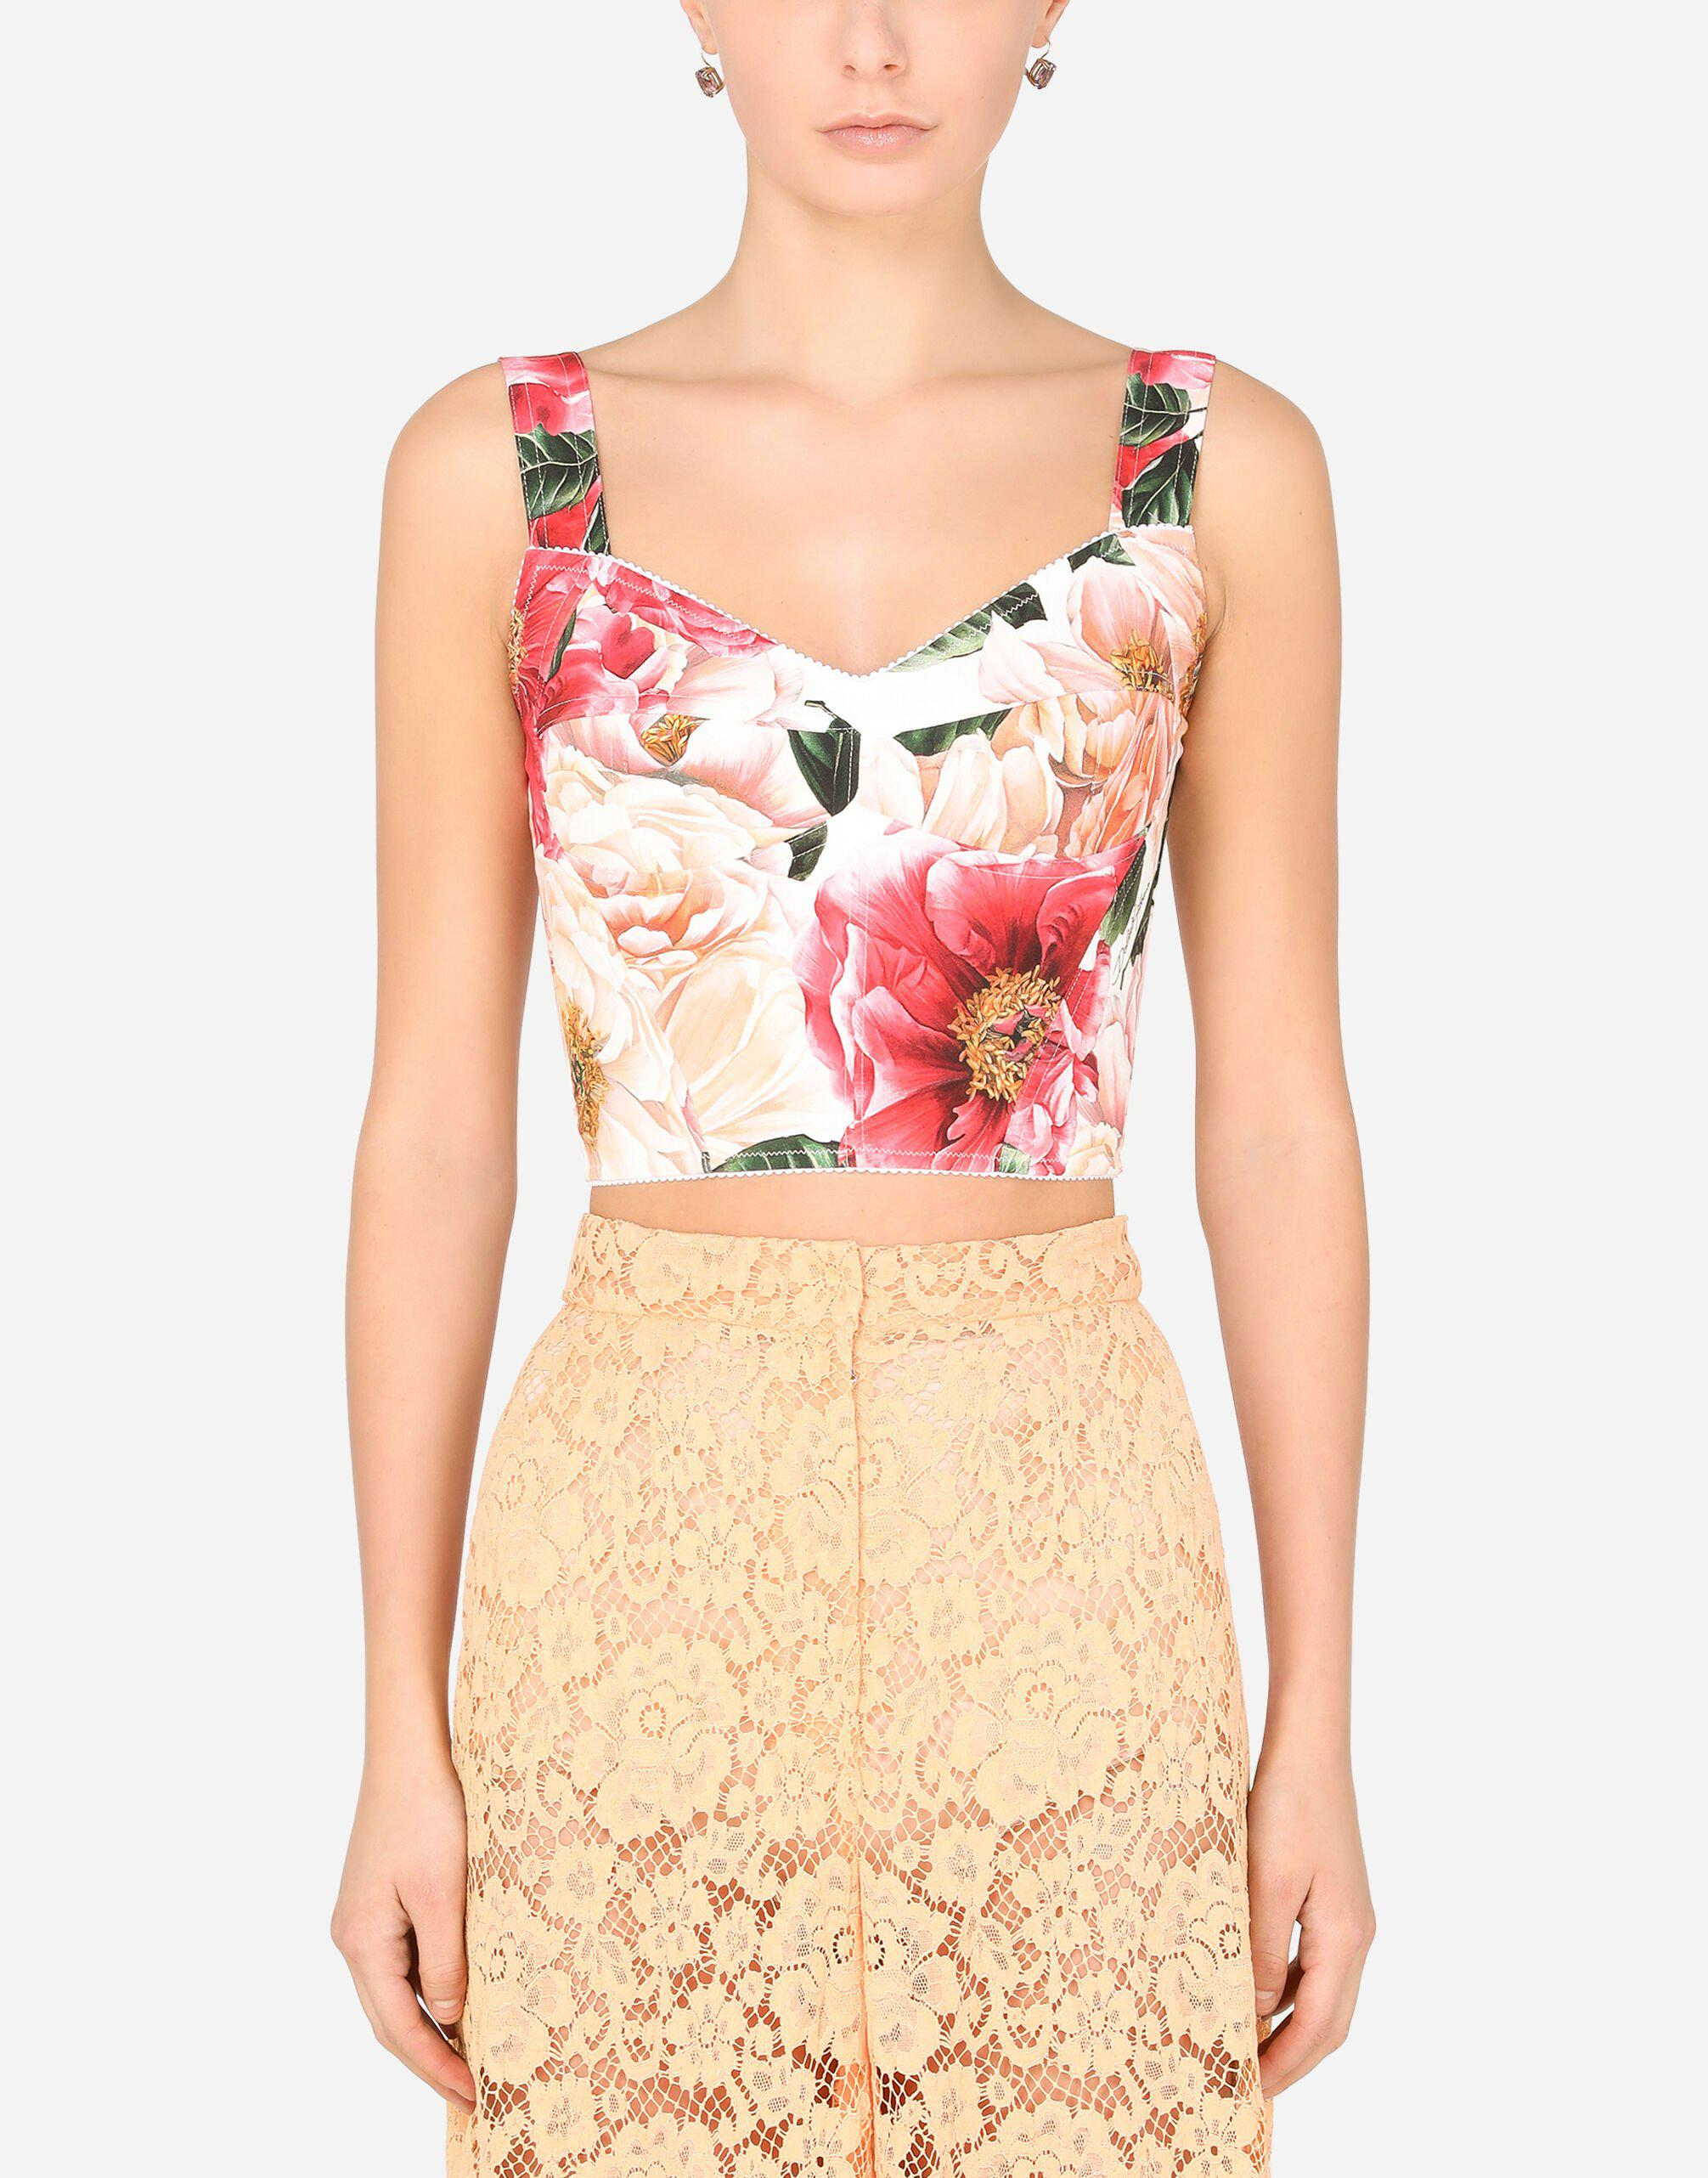 Camellia-print charmeuse bustier top